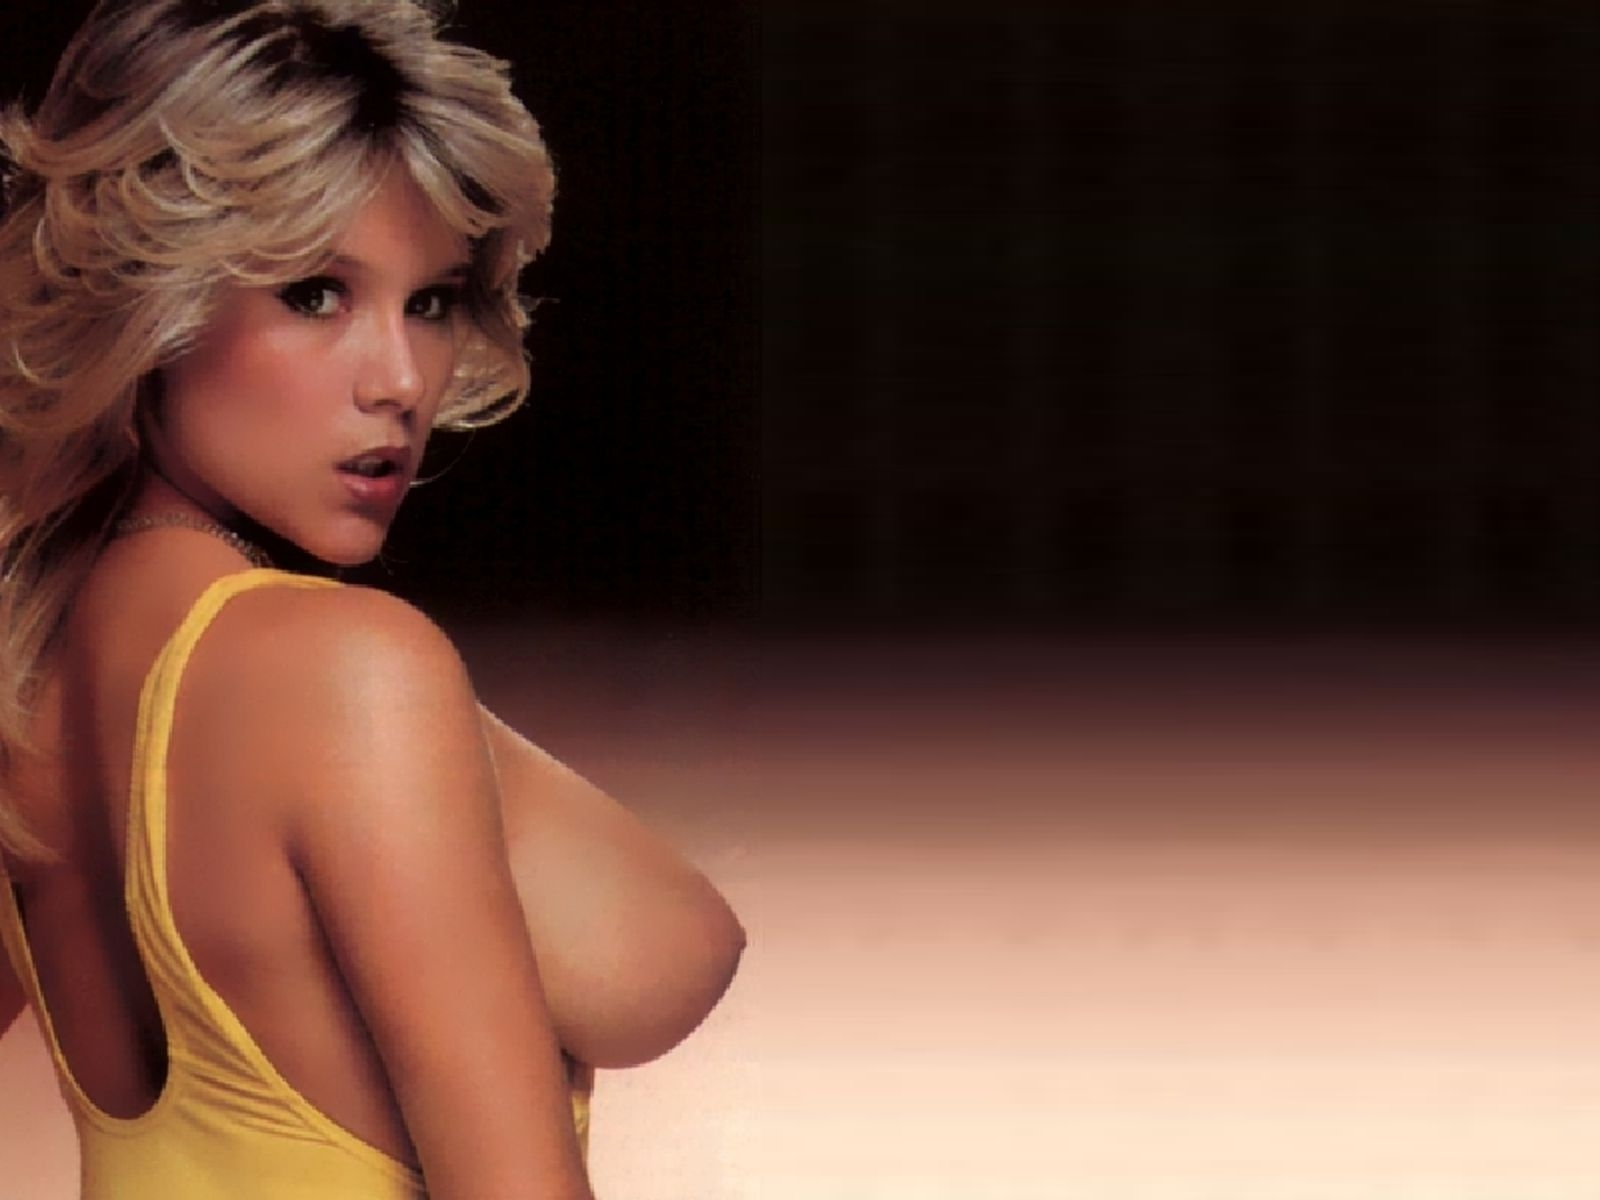 playing naked with samantha fox herself pictures